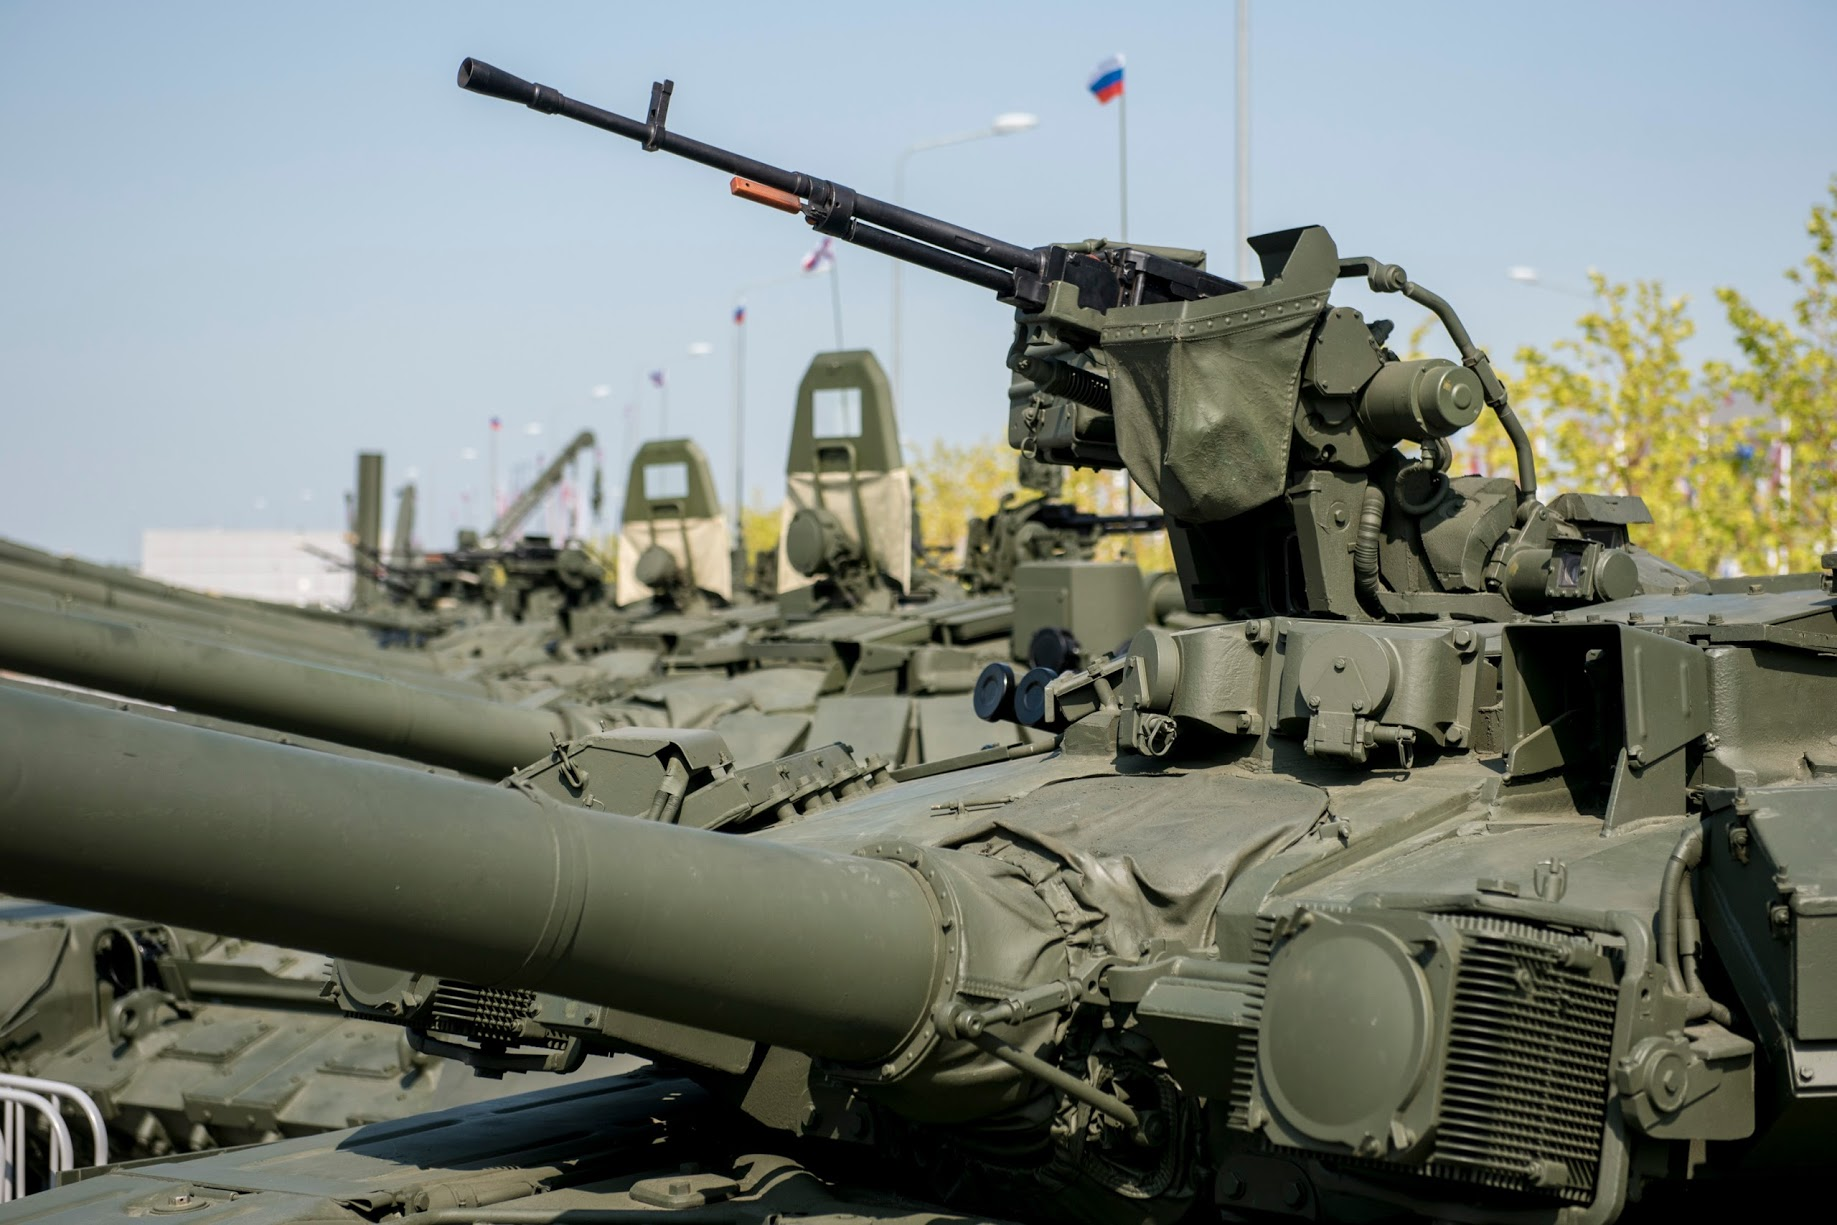 Rosoboronexport: Artillery to Play Bigger Part in Local Conflicts